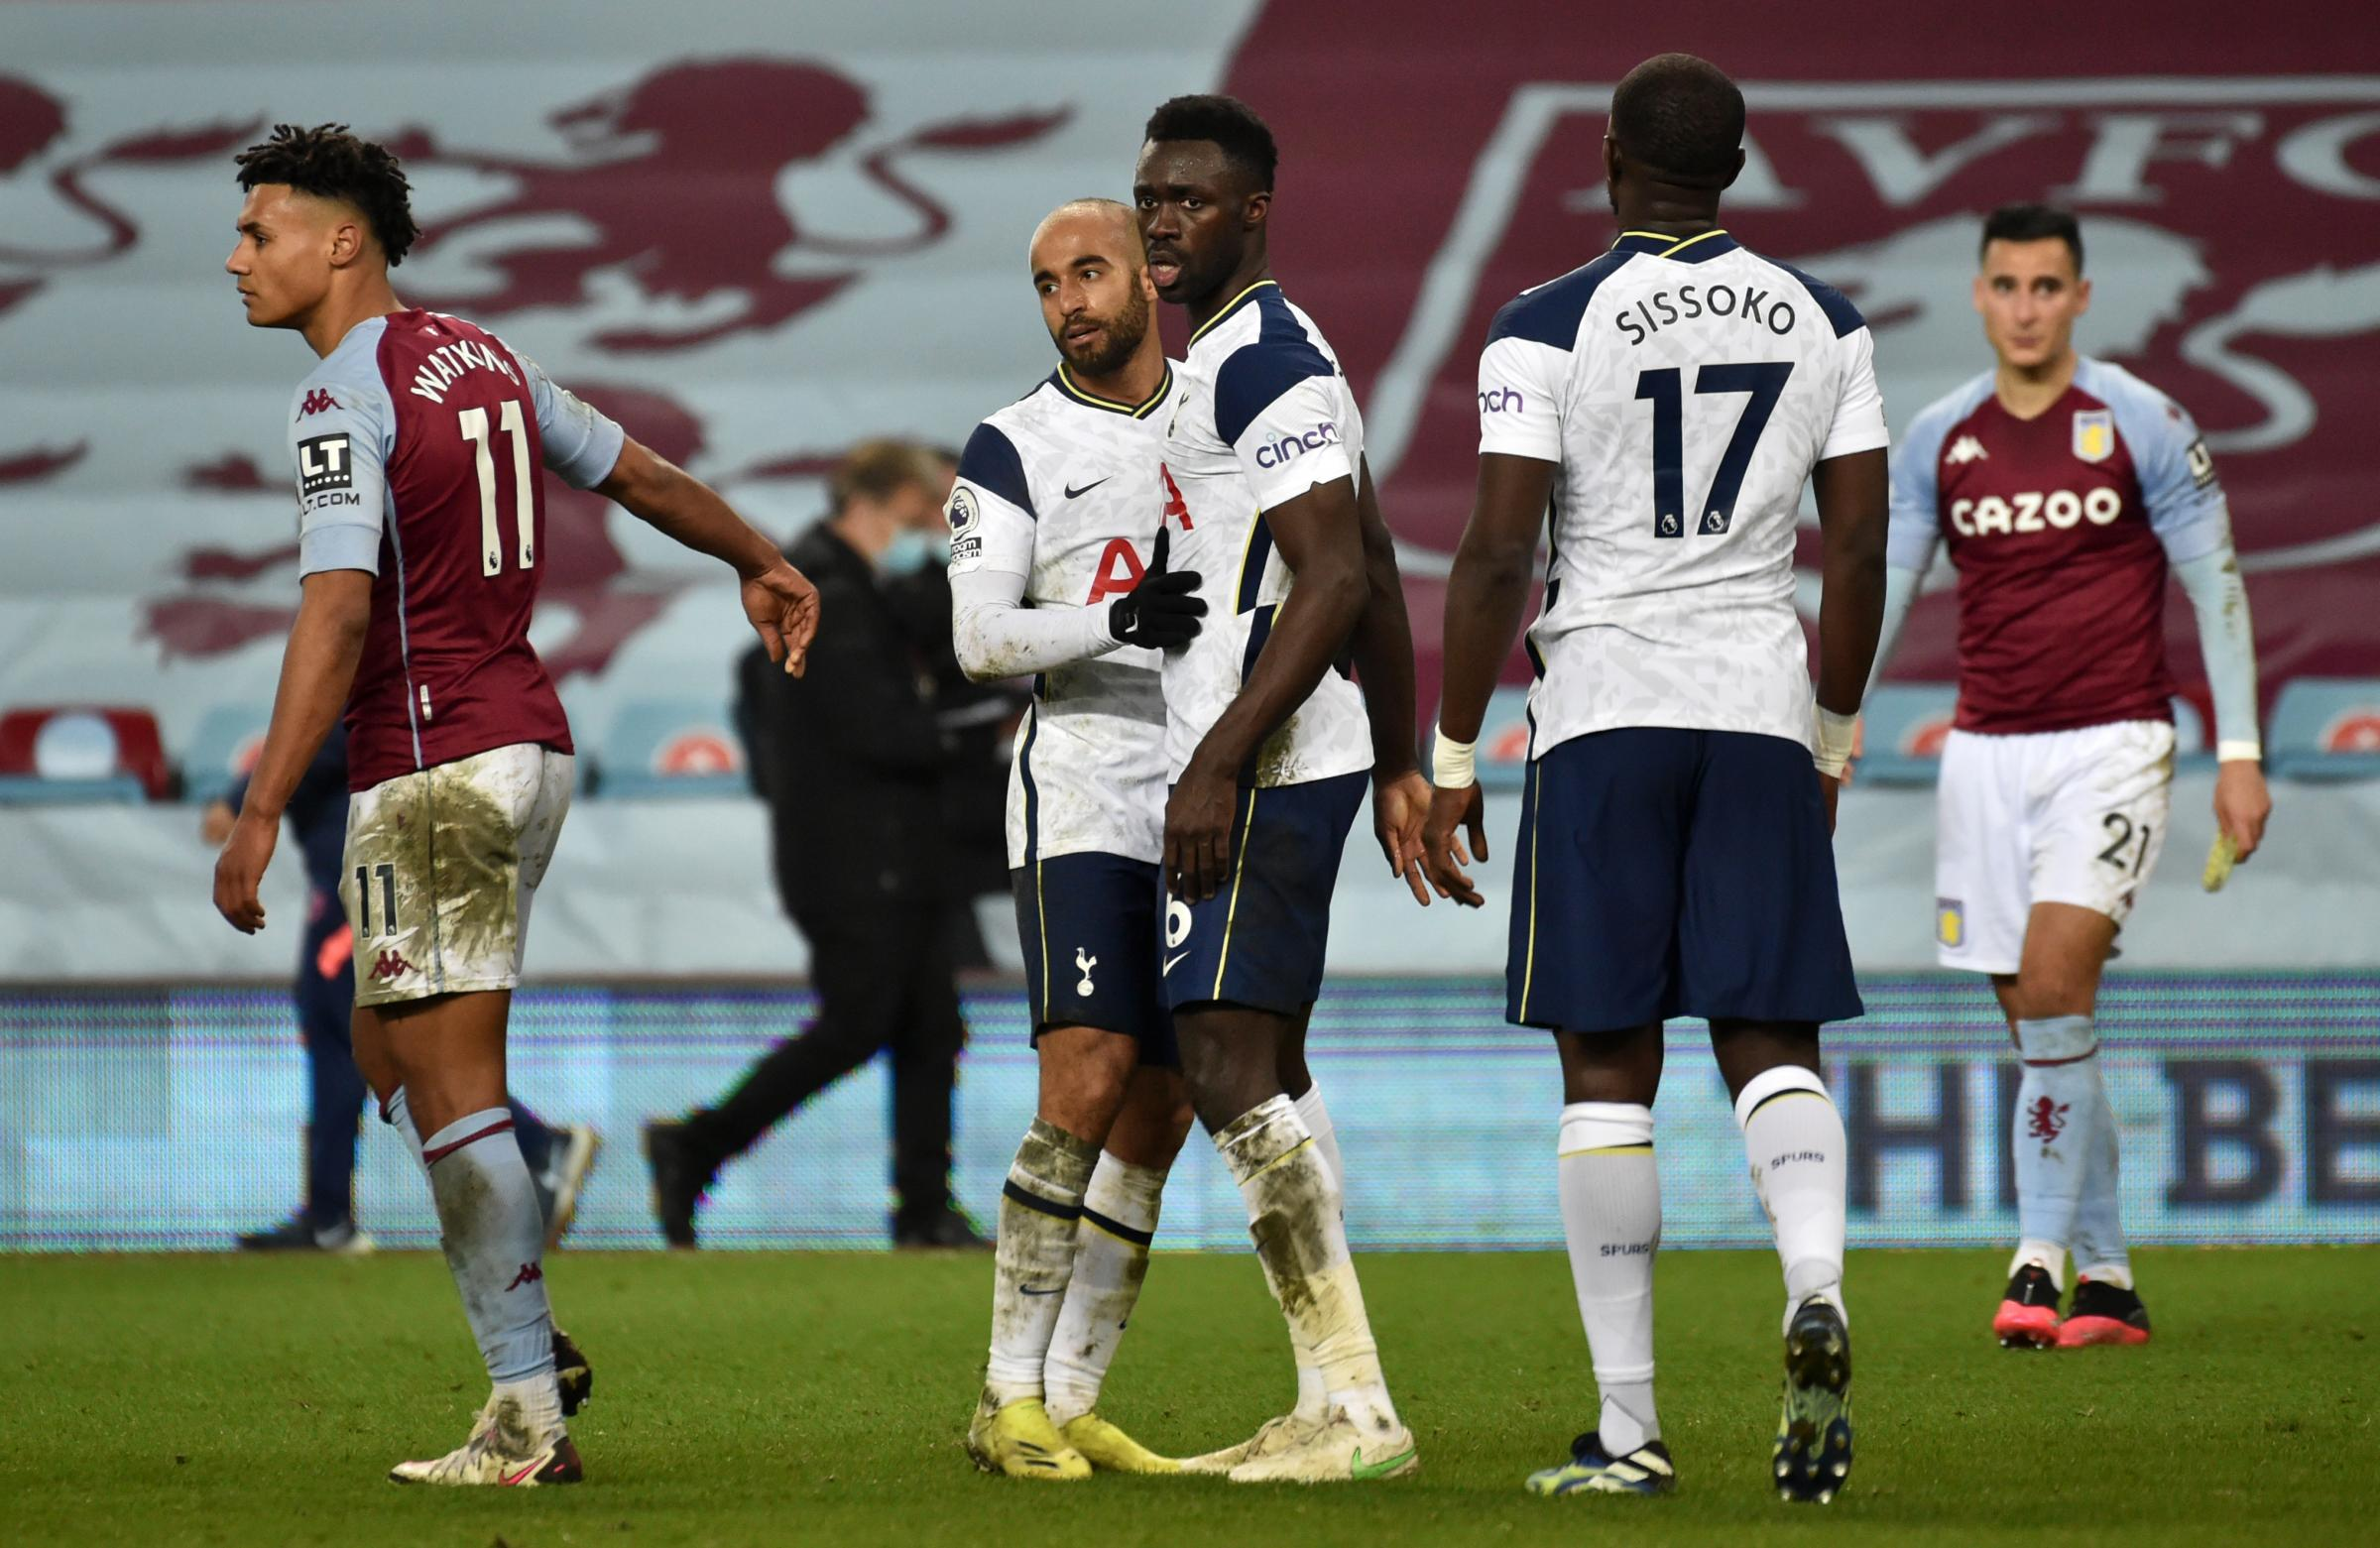 Tottenham Hotspurs Lucas Moura (left) and Davinson Sanchez celebrate victory after the Premier League match at Villa Park, Birmingham. Picture date: Sunday March 21, 2021.